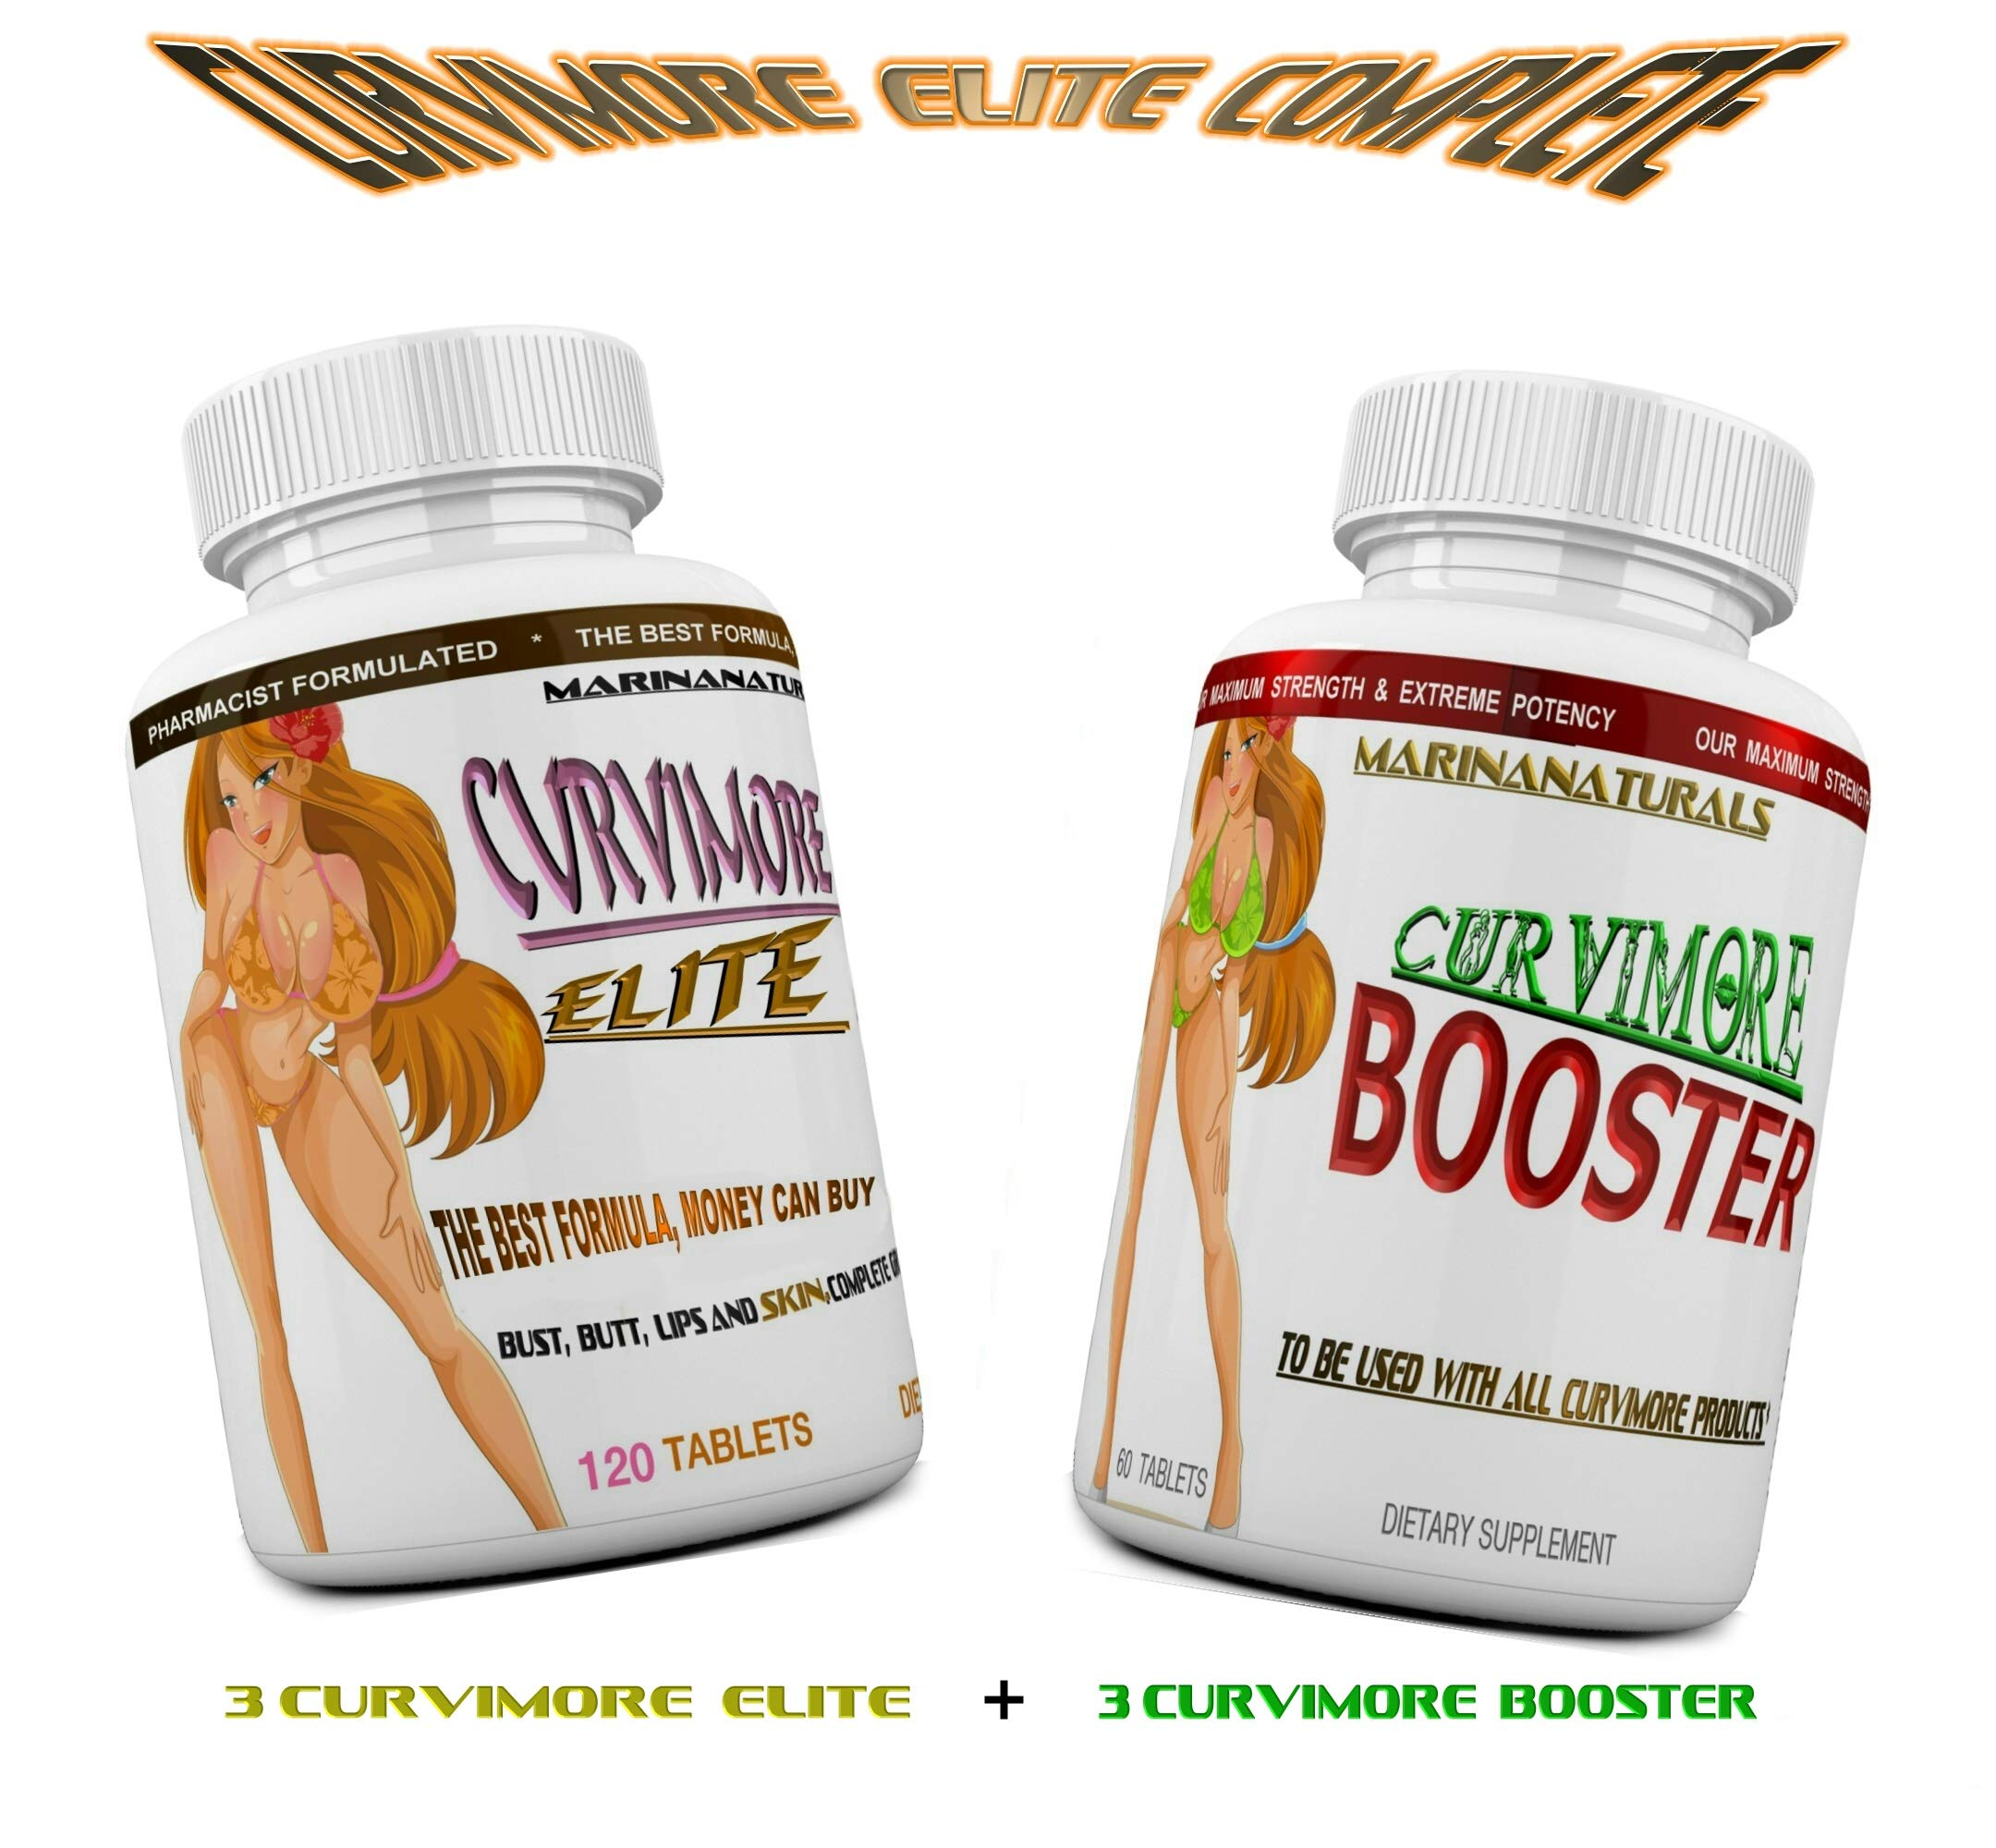 CURVIMORE Elite Complete ☀ Our Advanced Natural Breast Enlargement, Butt Enhancement, Bust Enhancement Lip Plumping & Skin Tightening Pills - Fuller Breasts, Booty & Brazilian Butts. 3-Month Course by MARINANATURALS (Image #1)